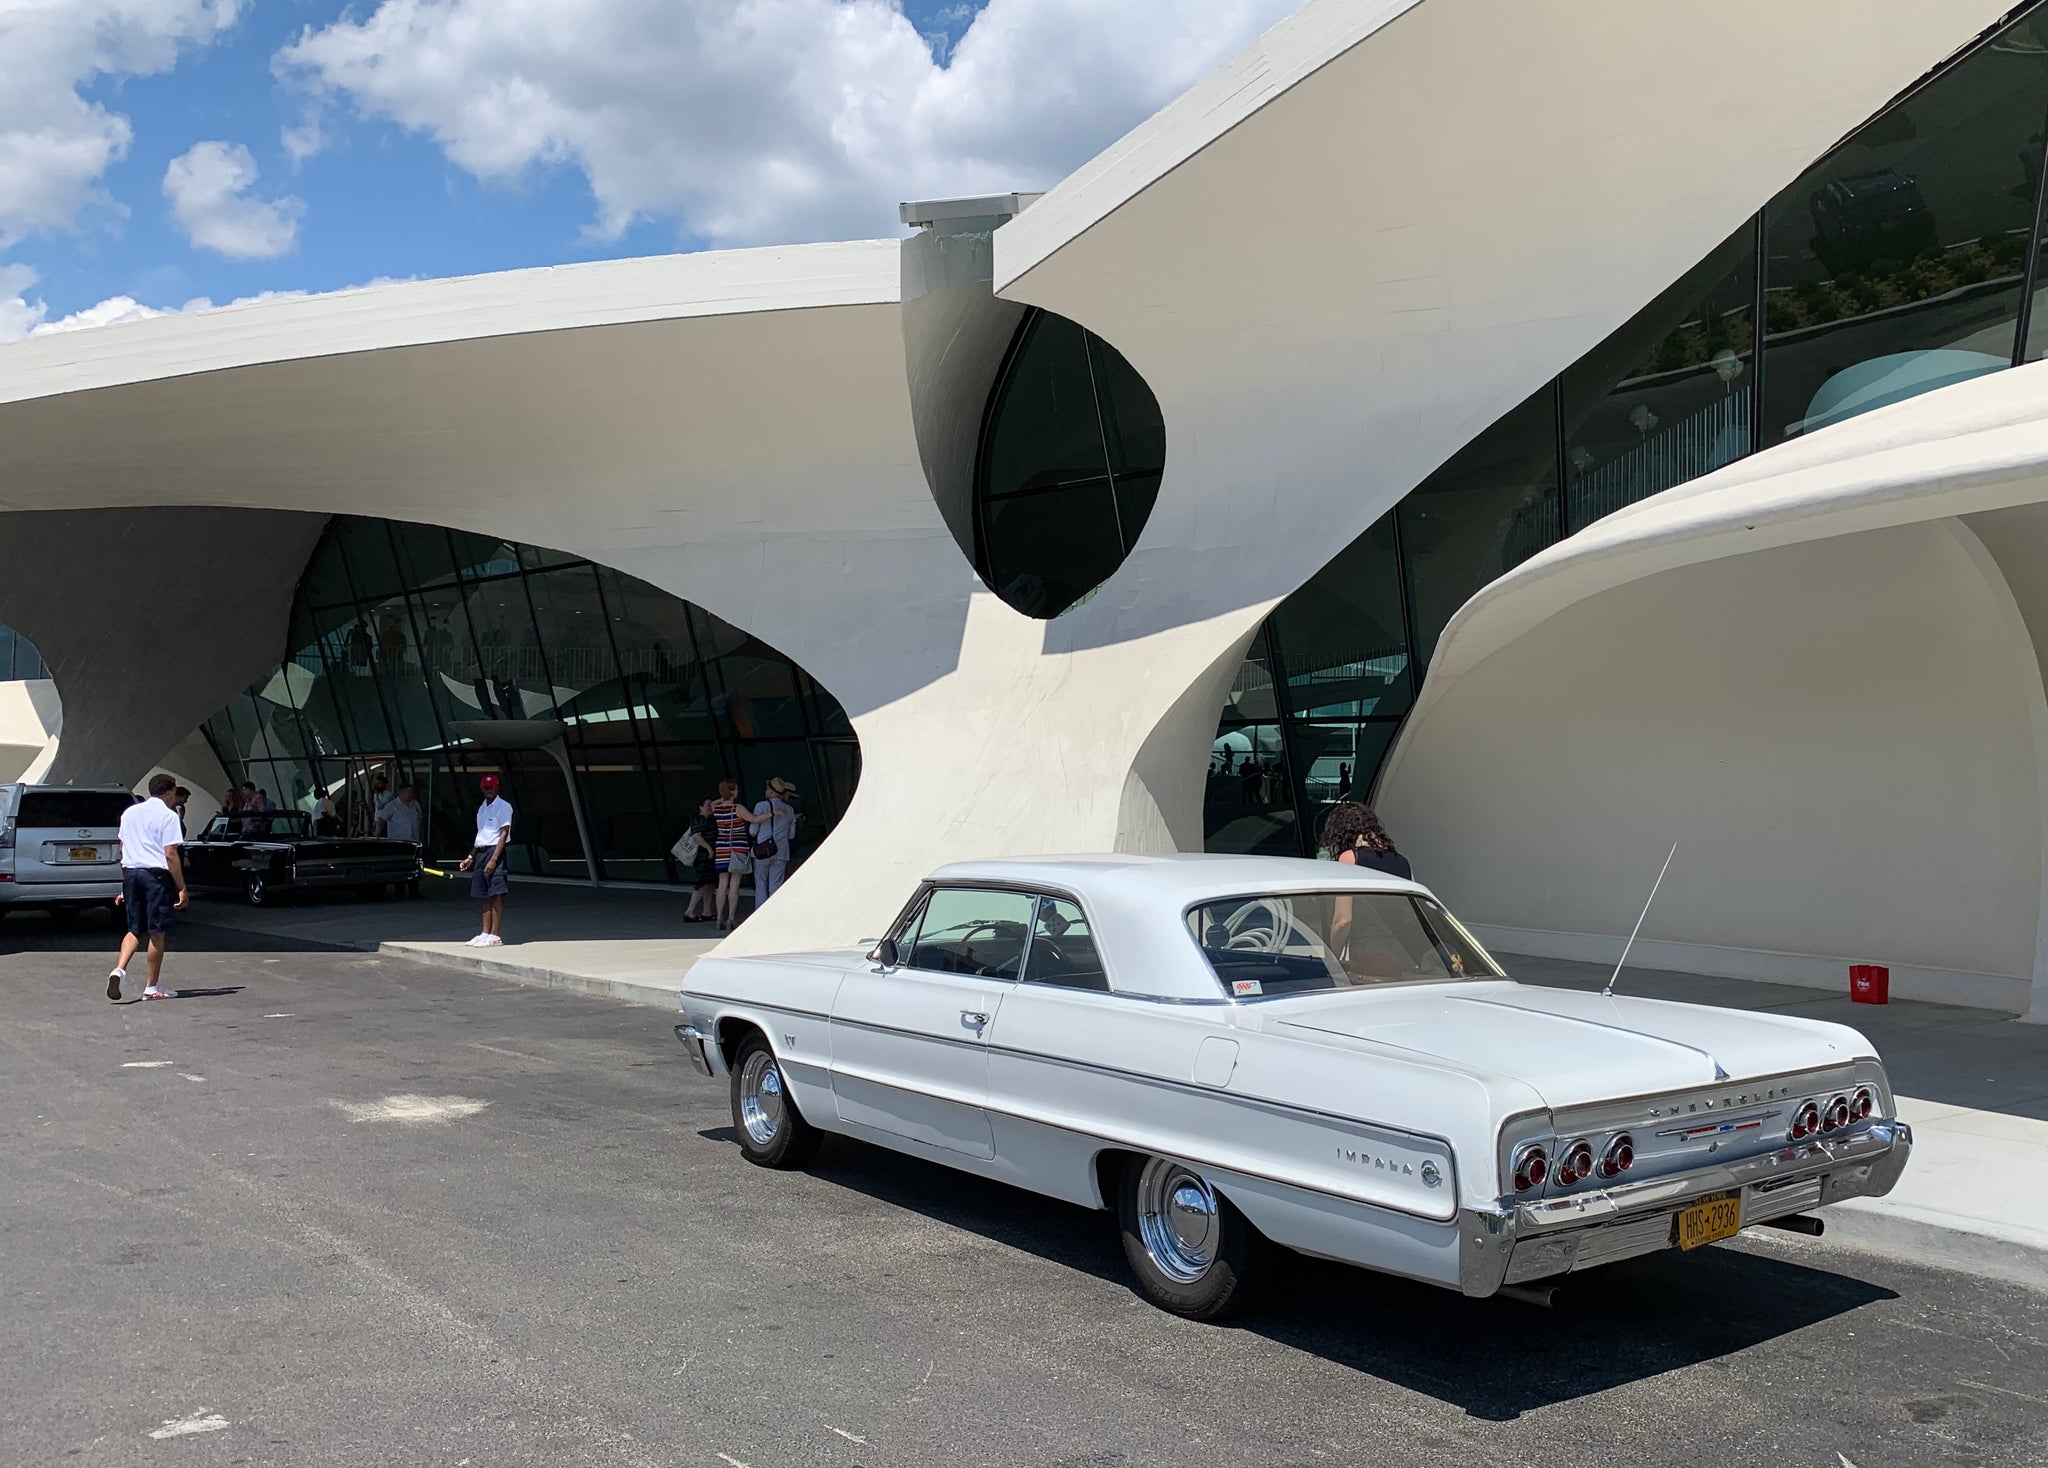 TWA Hotel leaving the past behind